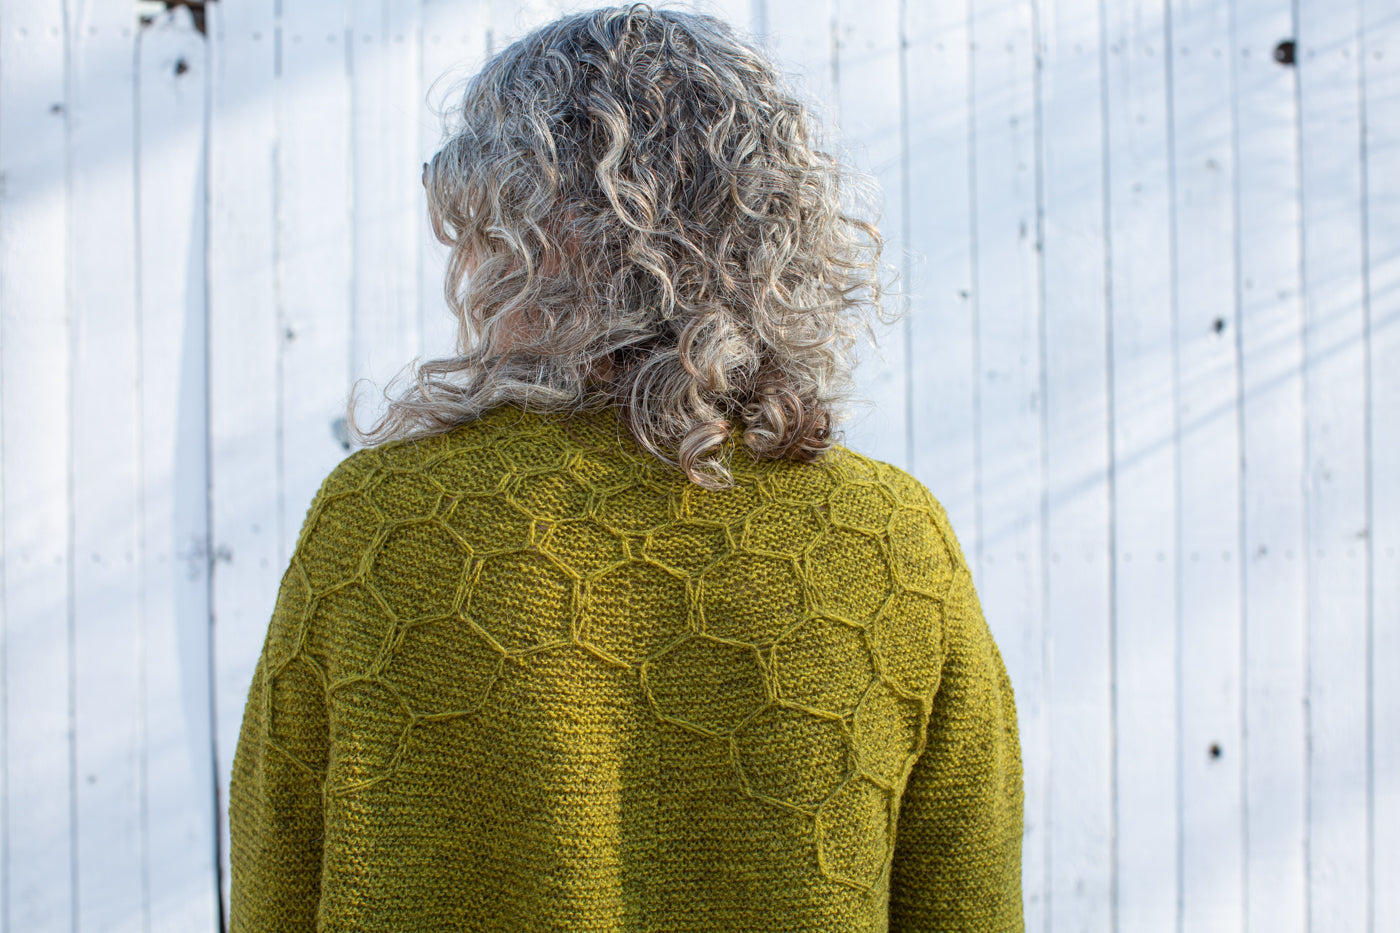 Jaime facing away from camera the camera crop is close up showing the honeycomb design on her yellow-green knitted sweater .  The background is a white fence.